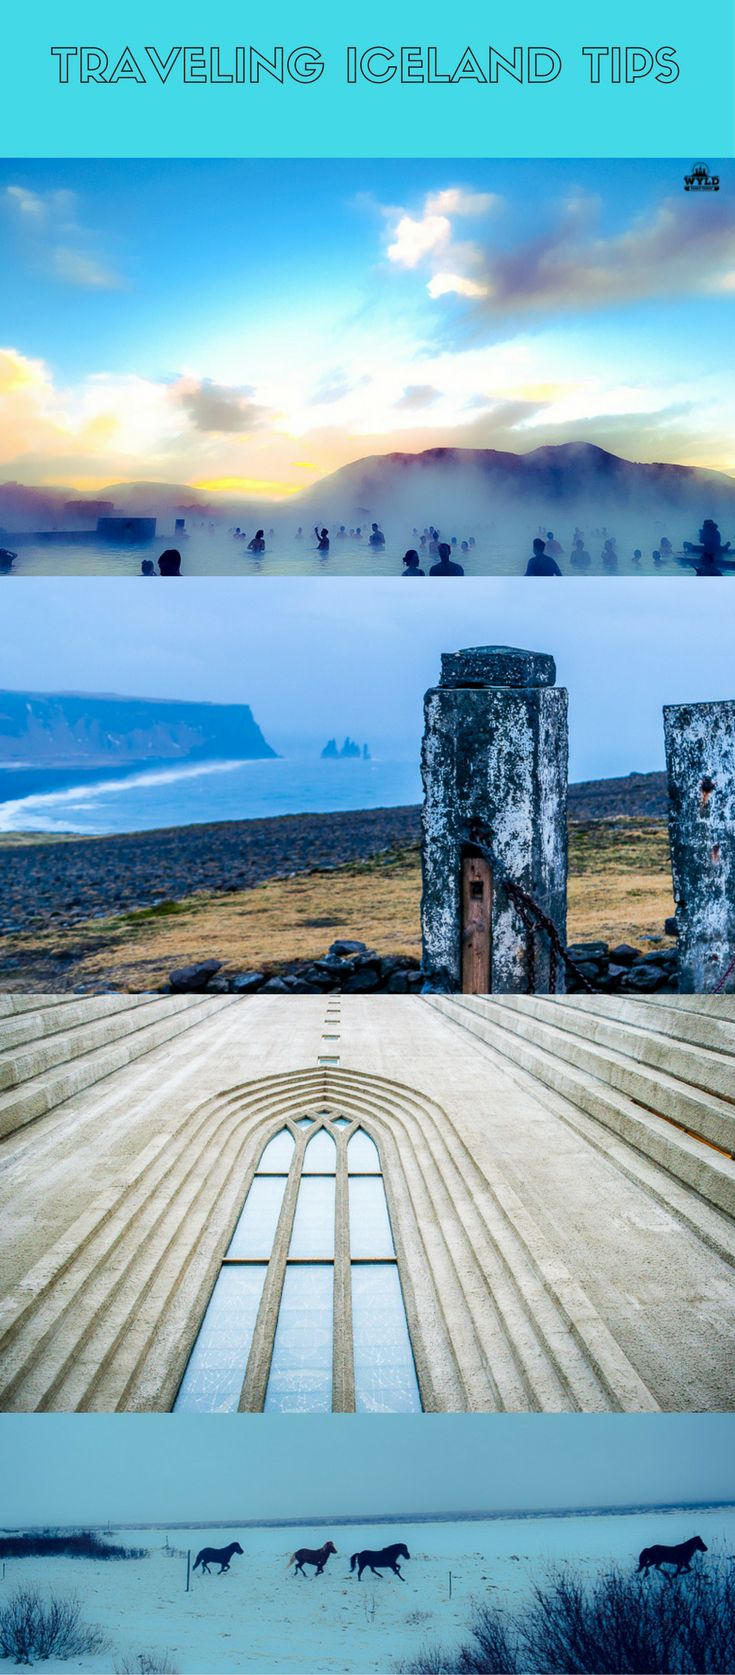 Tips, the do's and don'ts for Iceland.